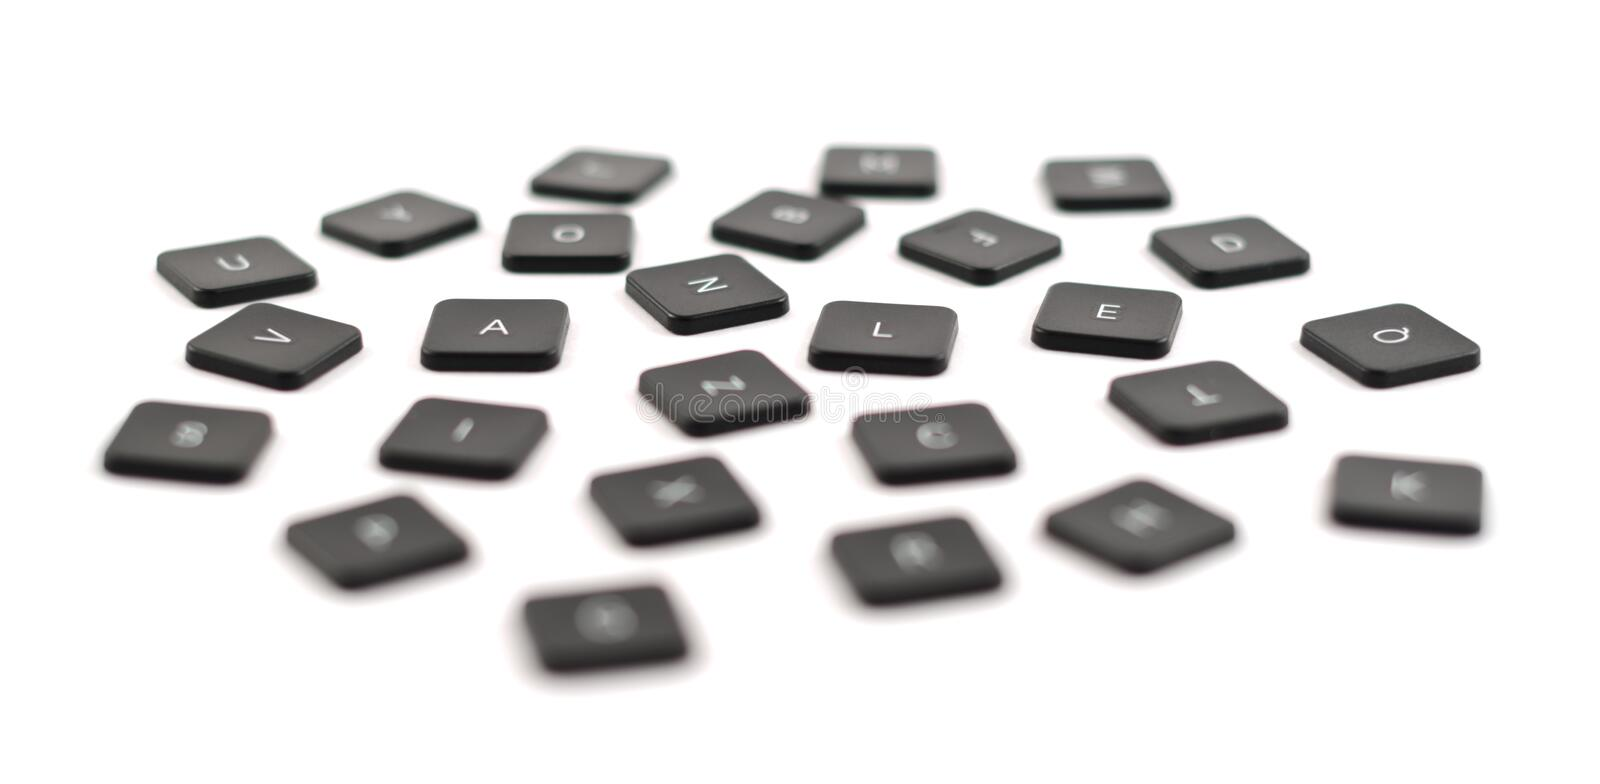 Black keyboard button composition isolated. Scattered black keyboard button composition isolated over the white background, shallow depth of field royalty free stock photography